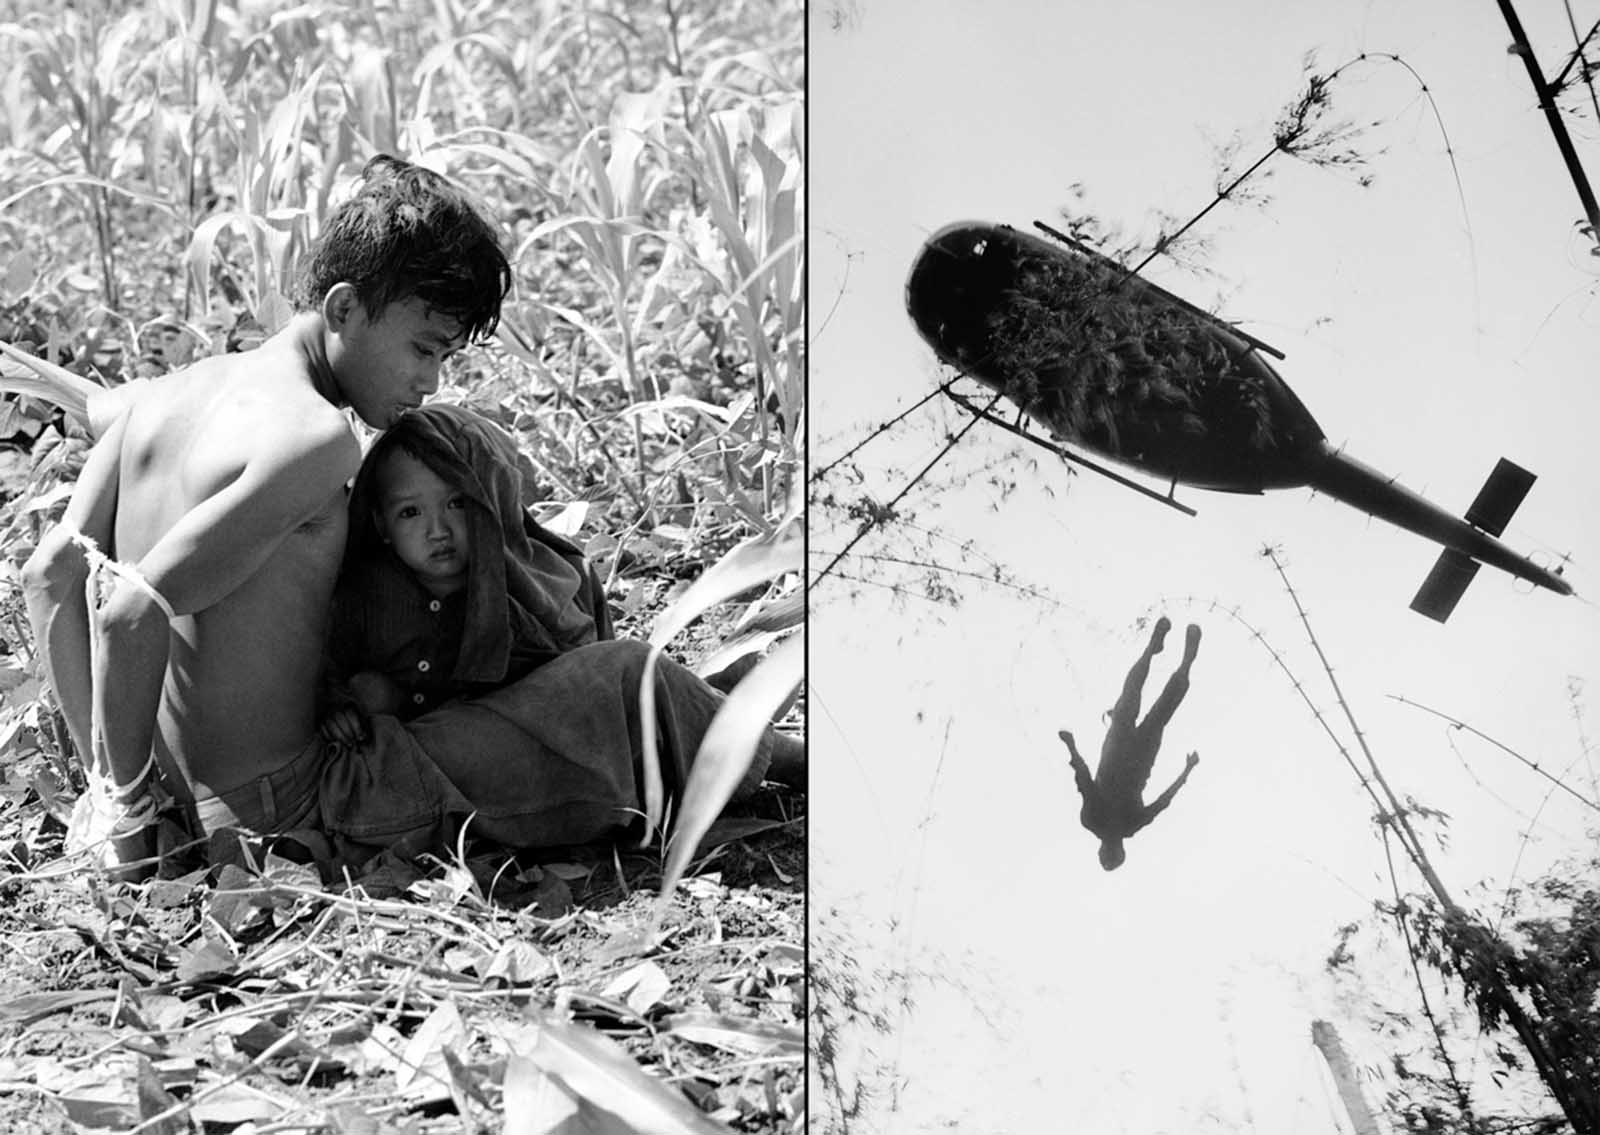 "Left: A Vietnamese child clings to his bound father who was rounded up as a suspected Viet Cong guerrilla during ""Operation Eagle Claw"" in the Bong Son area, 280 miles northeast of Saigon on February 17, 1966. The father was taken to an interrogation camp with other suspects rounded up by the U.S. 1st air cavalry division. Right: The body of an American paratrooper killed in action in the jungle near the Cambodian border is raised up to an evacuation helicopter in War Zone C, Vietnam, in 1966."